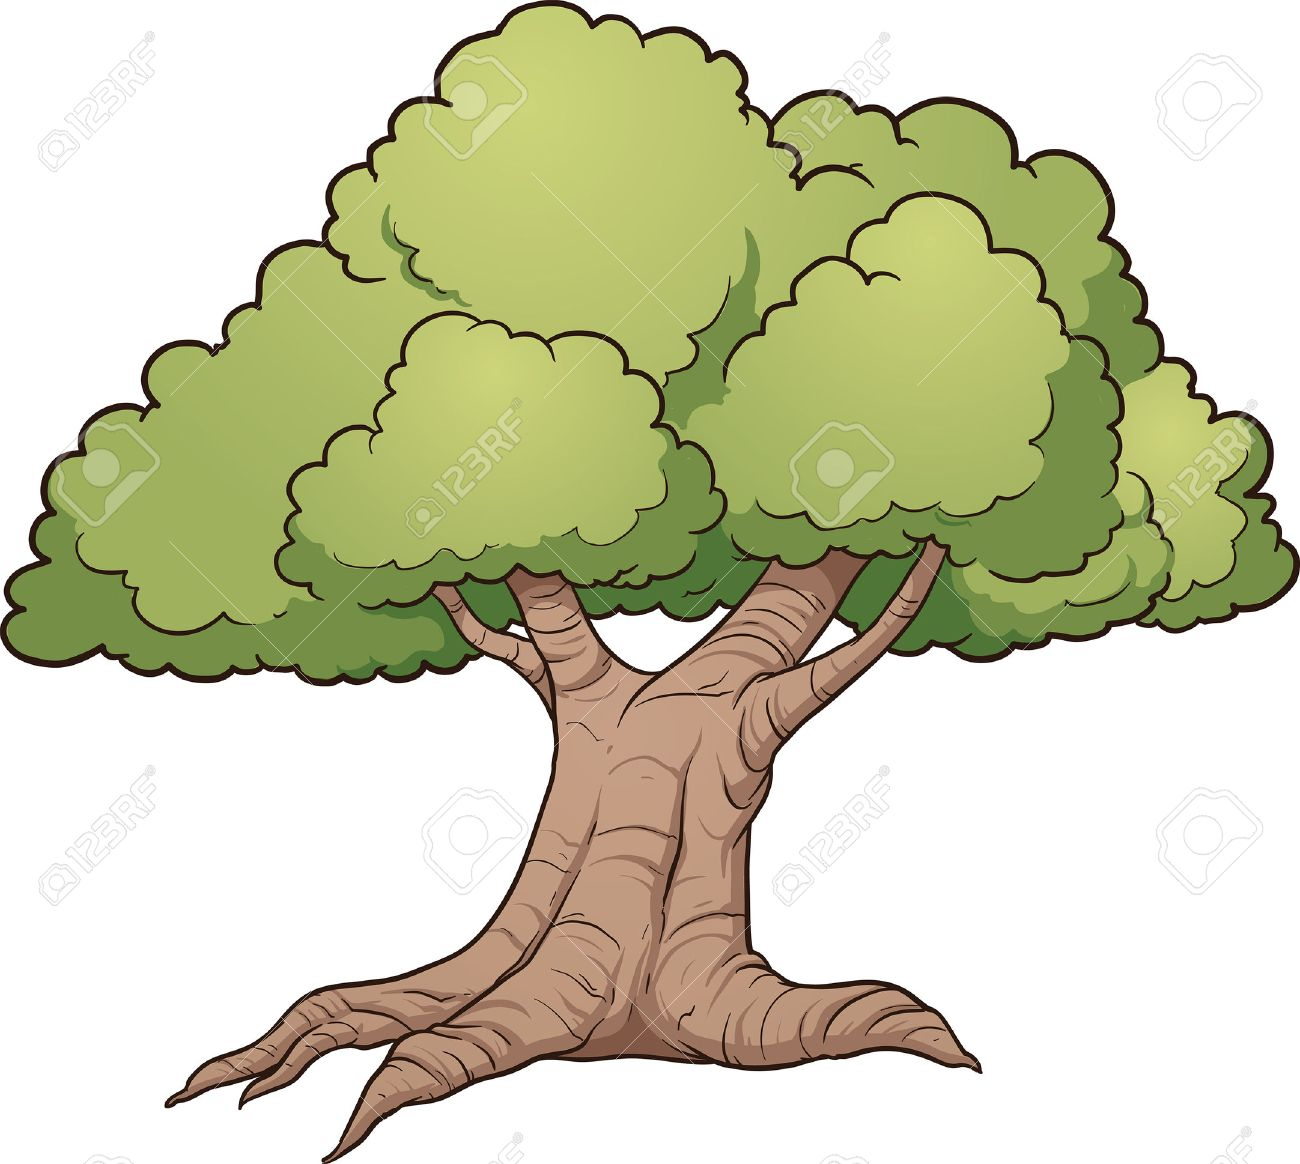 Image result for cartoon oak tree